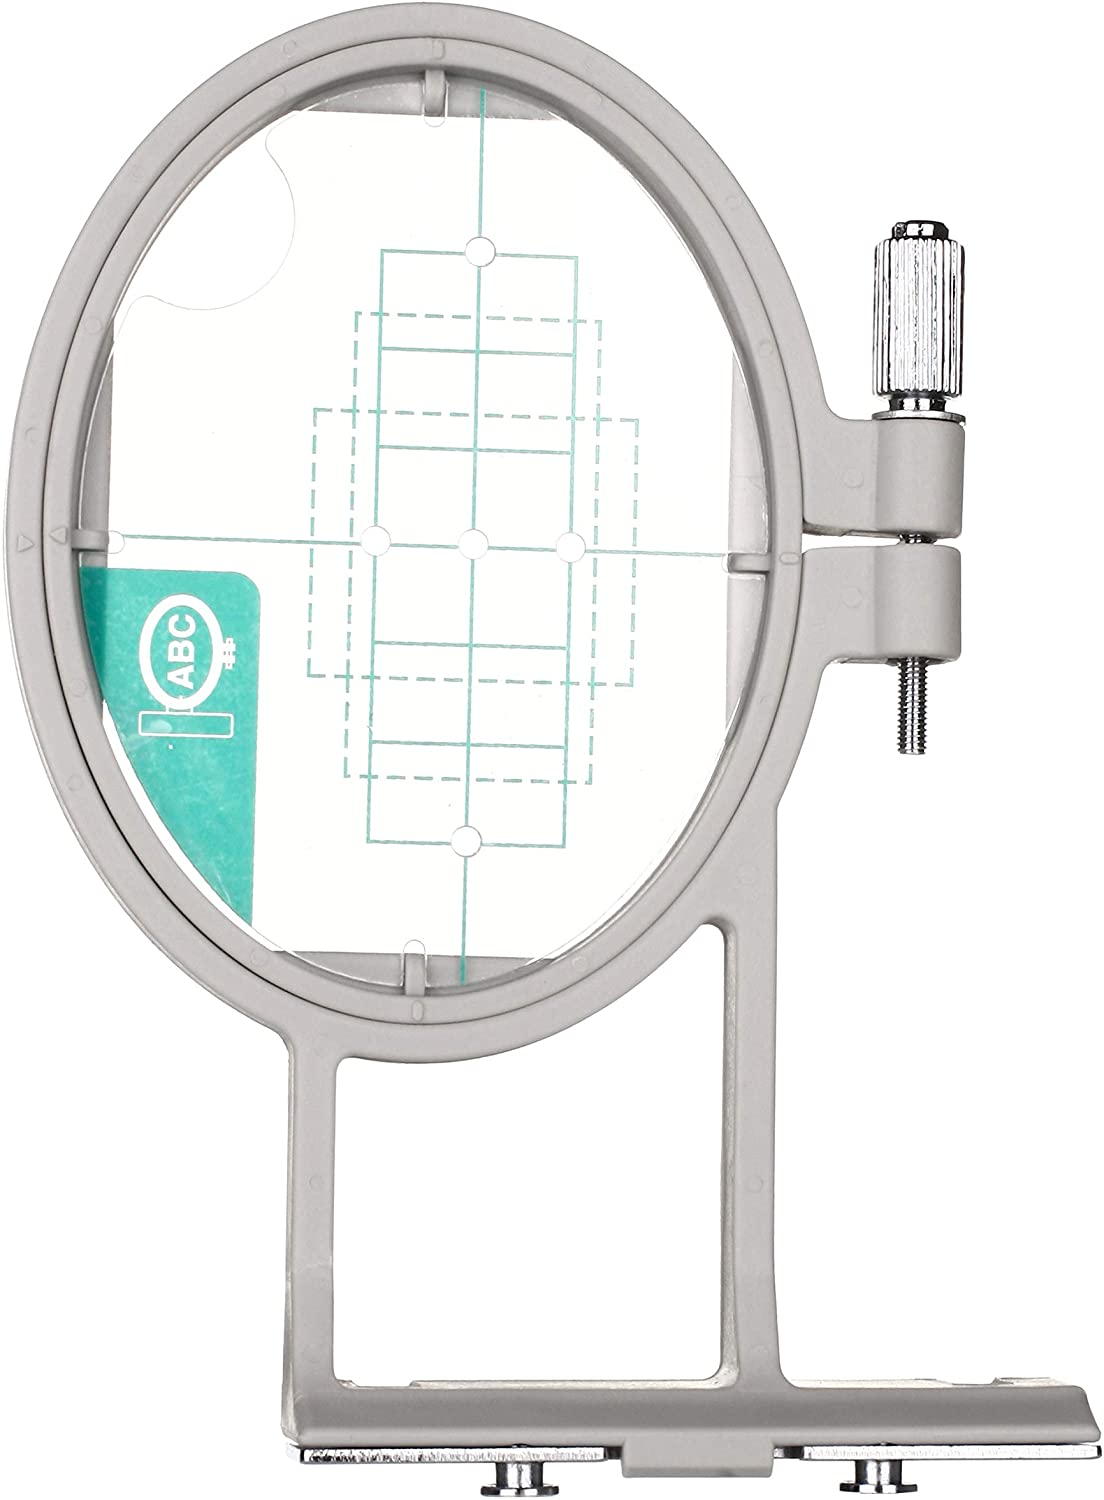 sew tech embroidery hoops